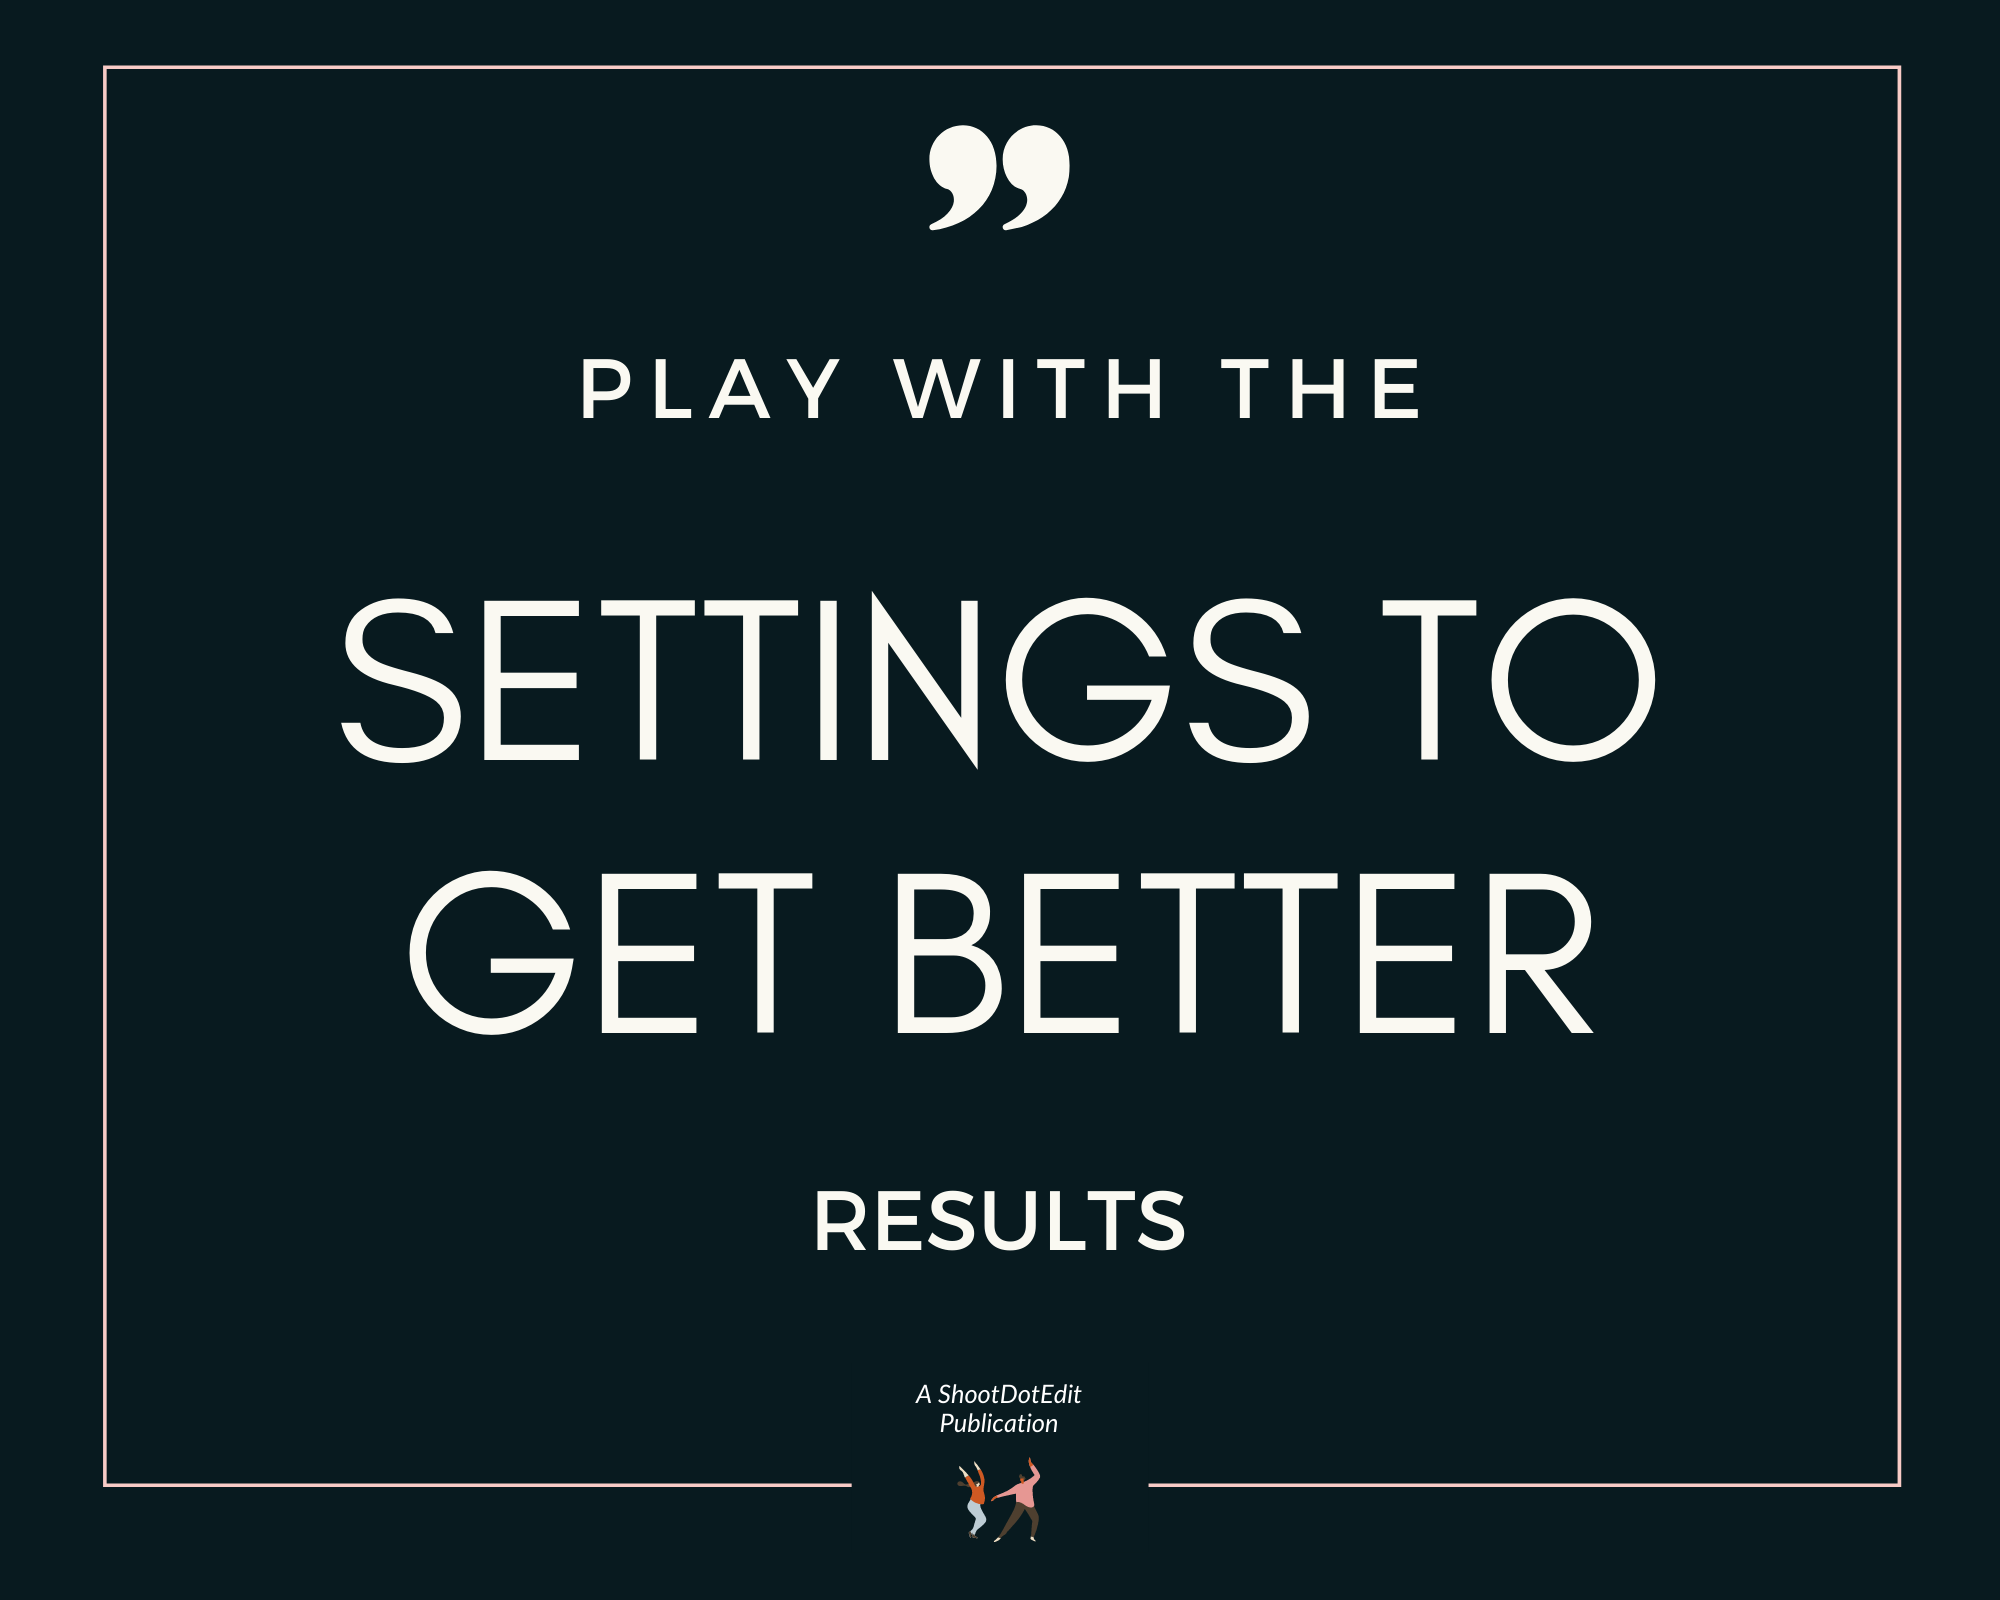 Infographic stating play with the settings to get better results